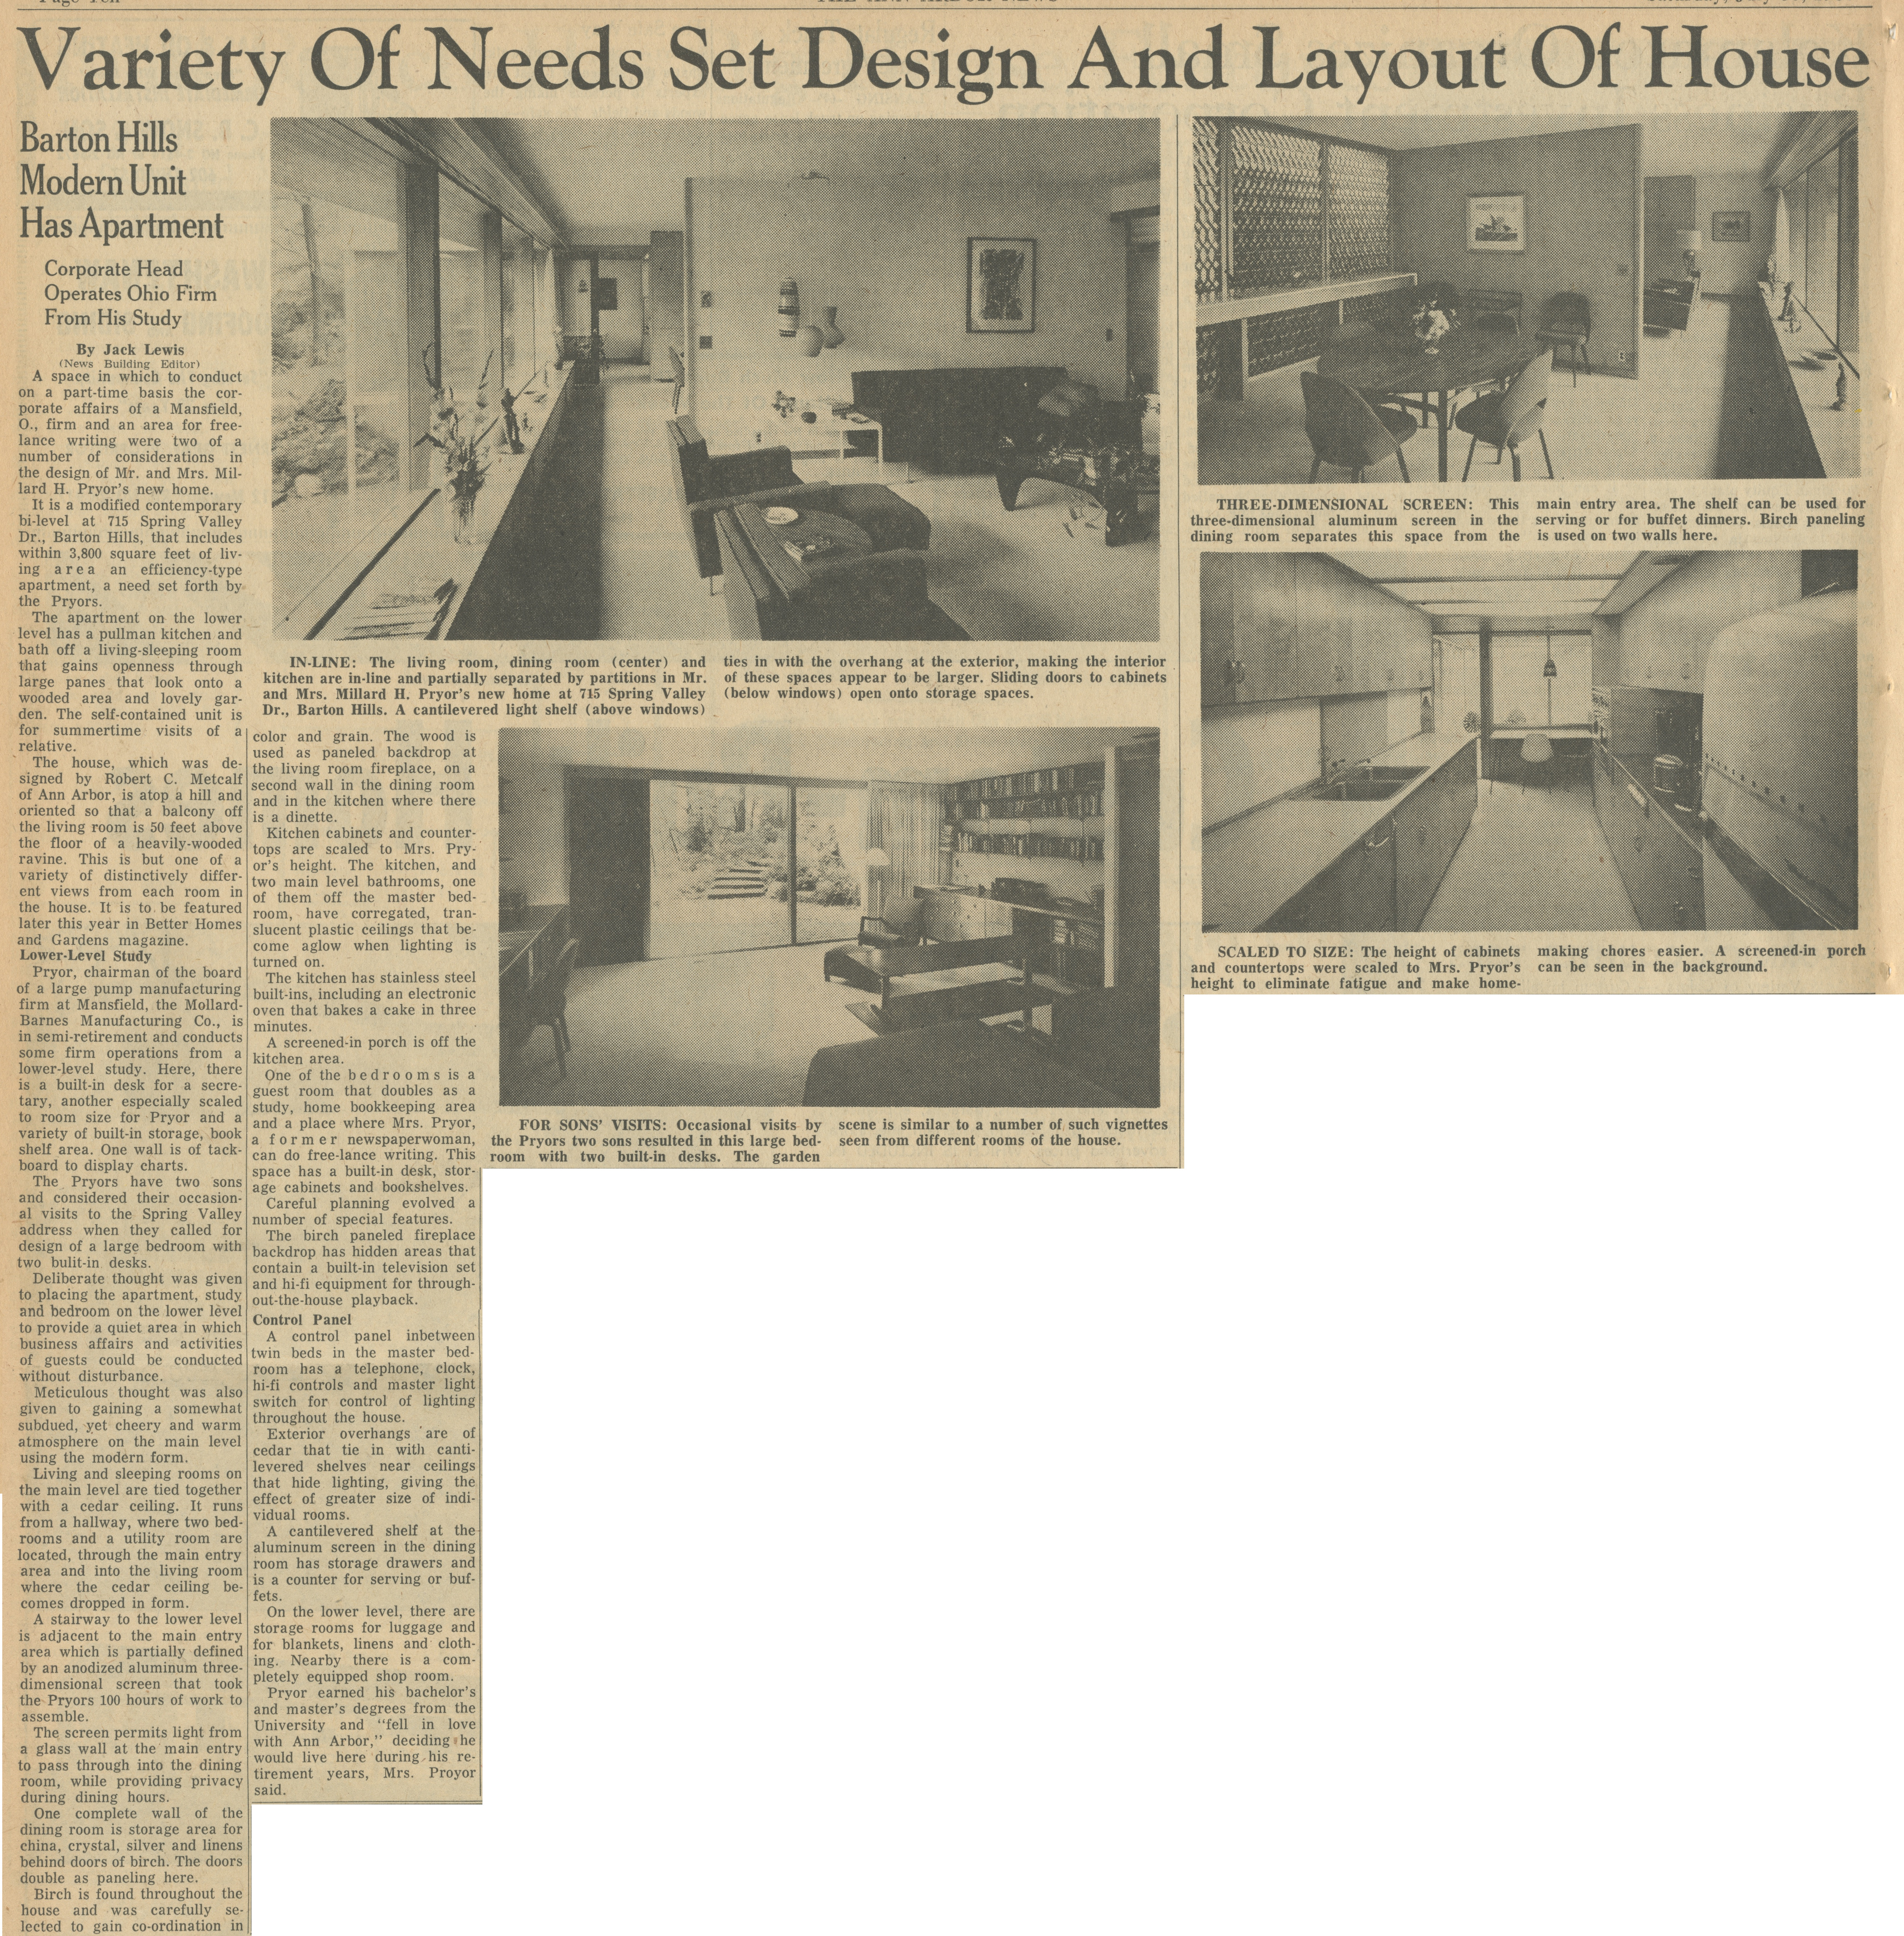 Variety Of Needs Set Design And Layout Of House image